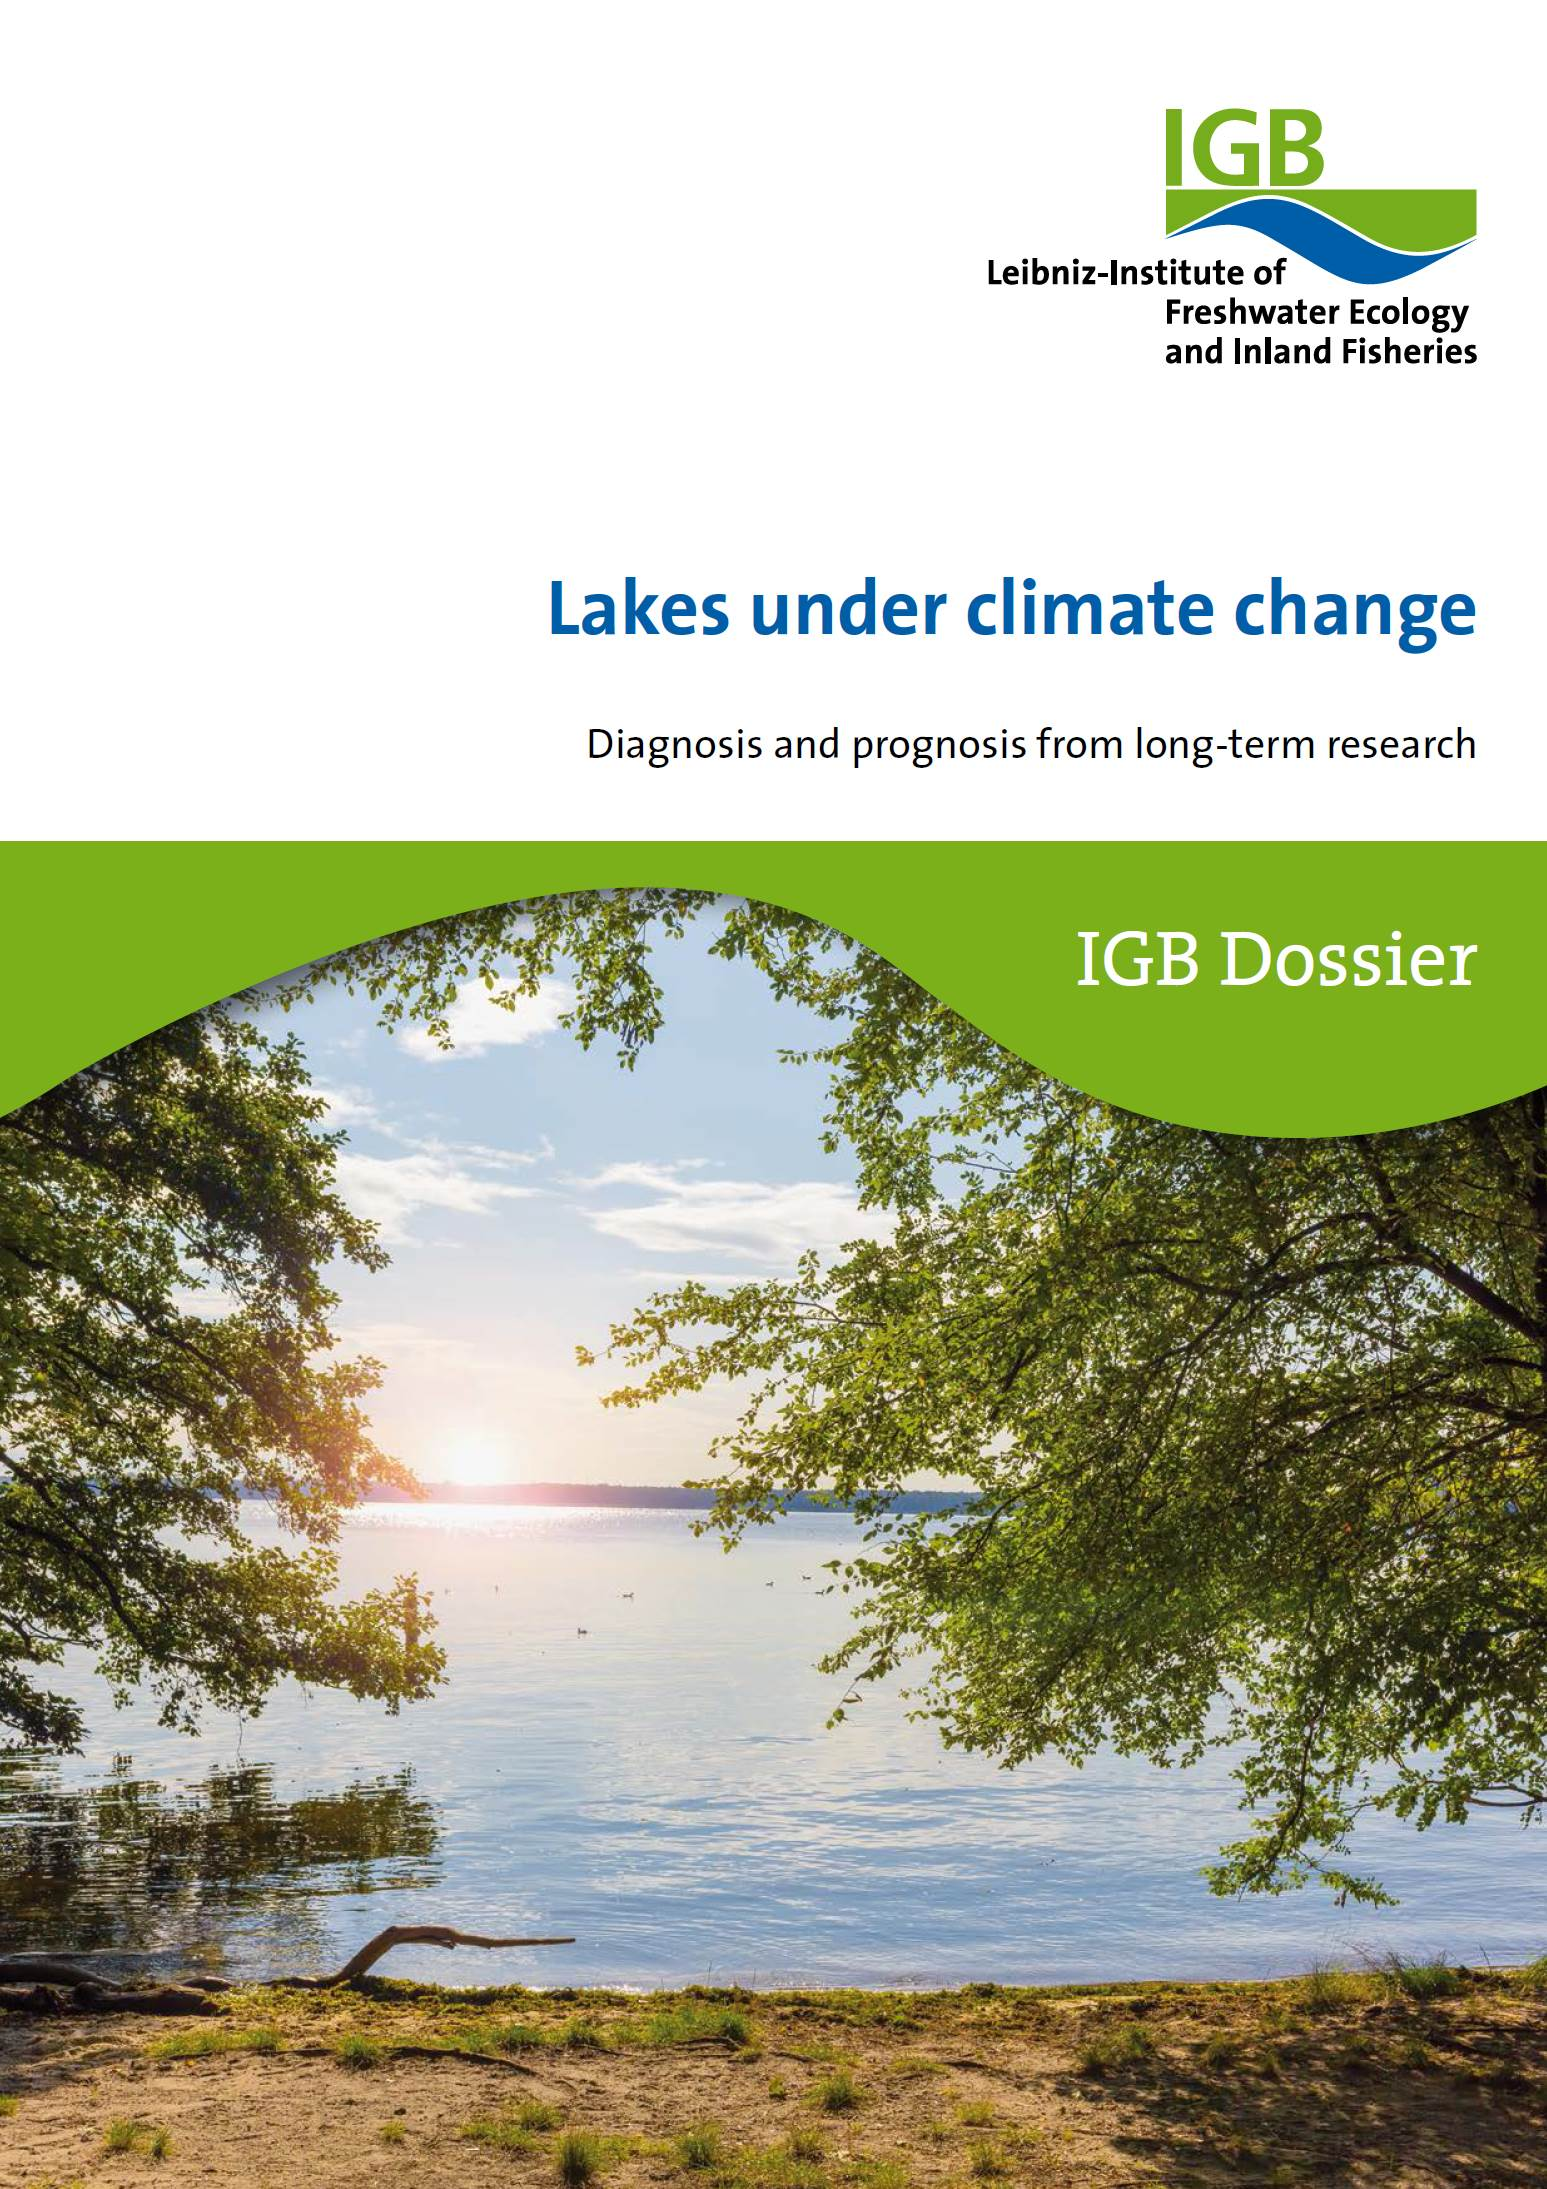 Cover of the dossier on lakes under climate change.